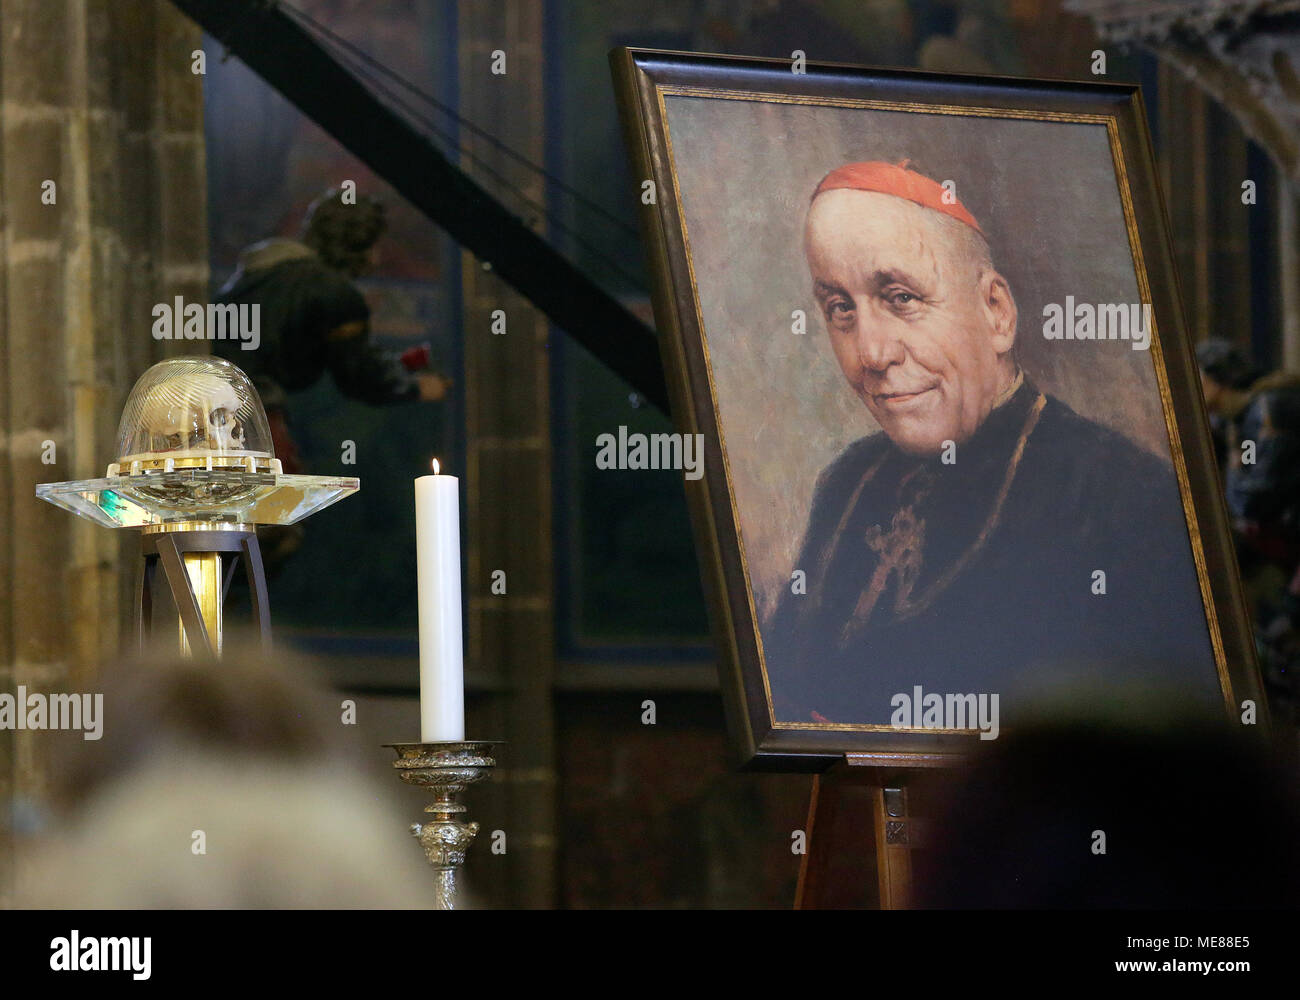 Church dignitaries and hundreds of church-goes paid homage to the memory of Cardinal Josef Beran (1888-1969), who was repatriated from the Vatican after an extended period of exile enforced upon him by the Communist regime, in the Saint Vitus Cathedral in Prague today, on Saturday, April 21, 2018. The mass was served by Prague Archbishop Cardinal Dominik Duka. 'I welcome my glorious predecessor,' Duka said at the opening of the mass. Duka also turned to the current events. He said the moments when Communists despite their electoral defeat were demanding an increasing share of power, were among - Stock Image